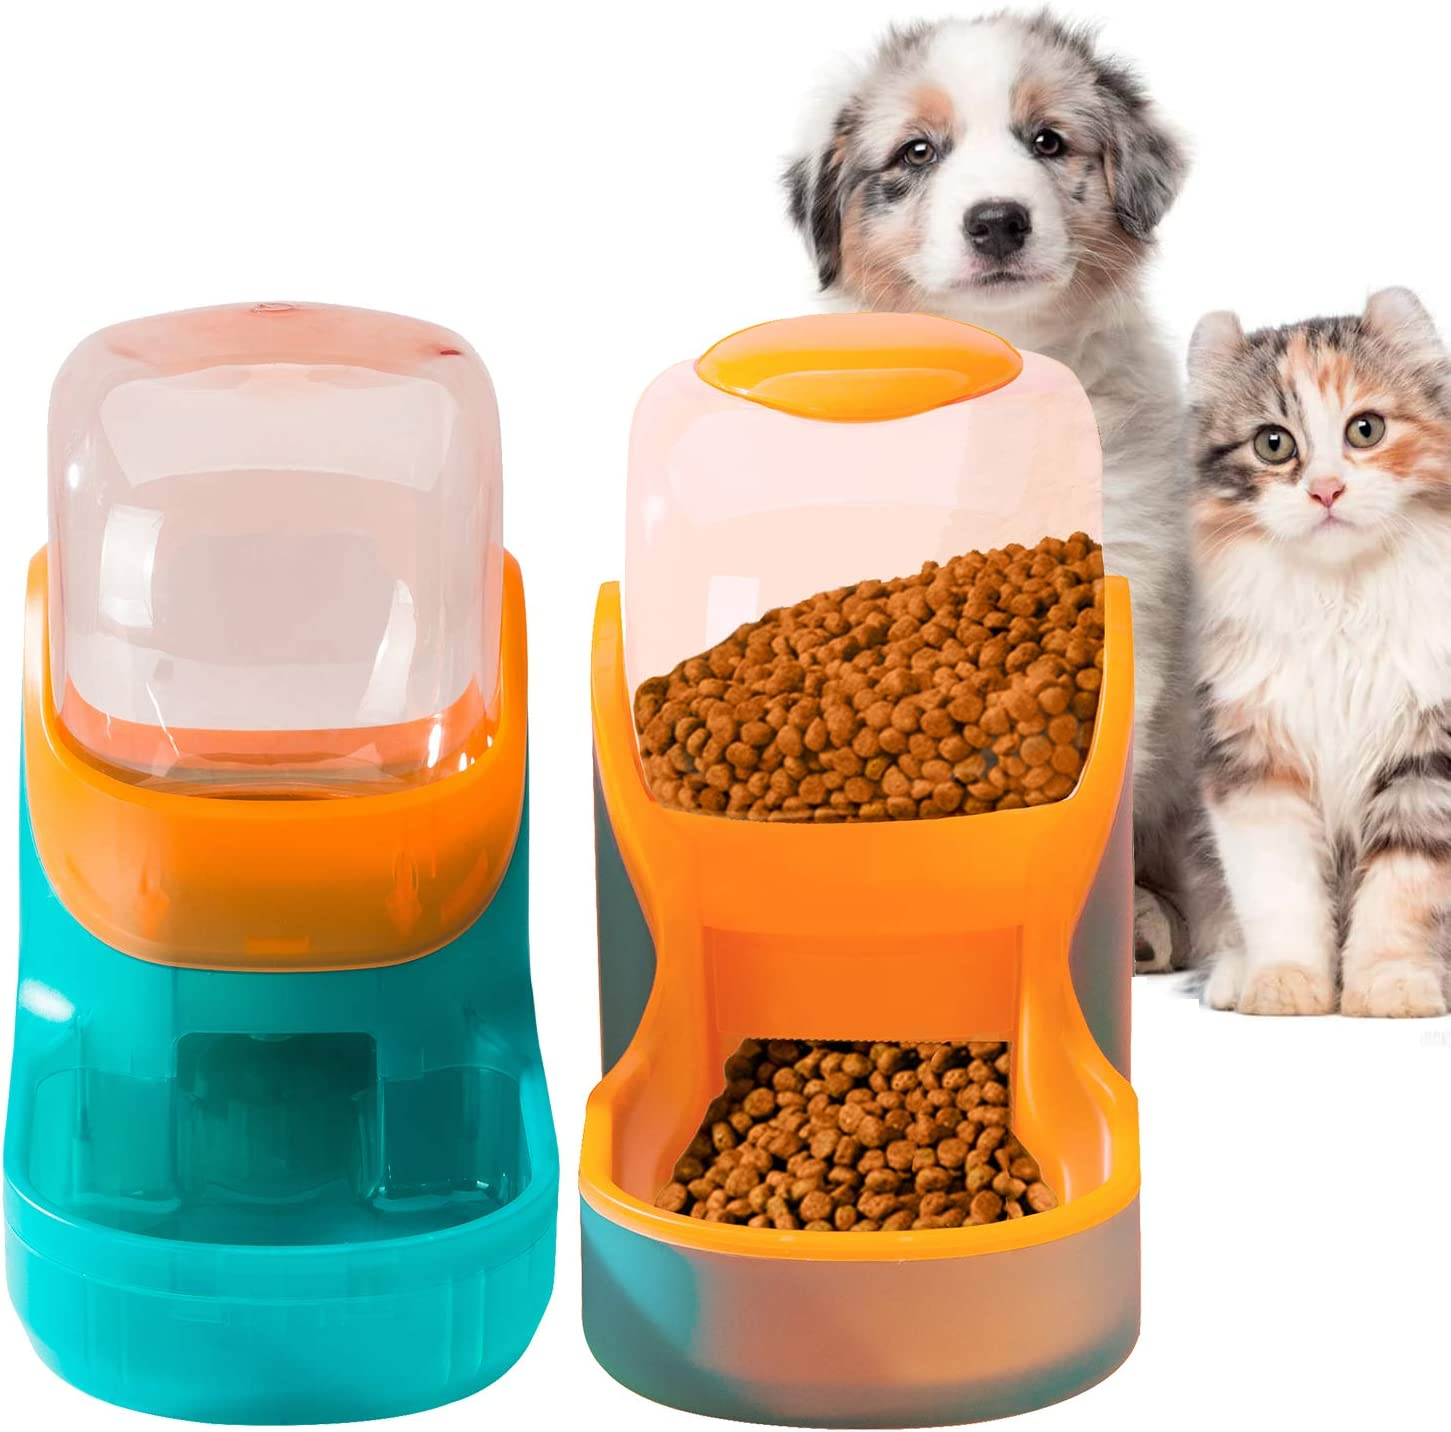 Pets Feeder Set Dog Feeder Cats Feeder with Water Dispenser Automatic Gravity Big Capacity Pets Feeder Auto for Small Medium Big Cats Dogs (Cyan+Orange)